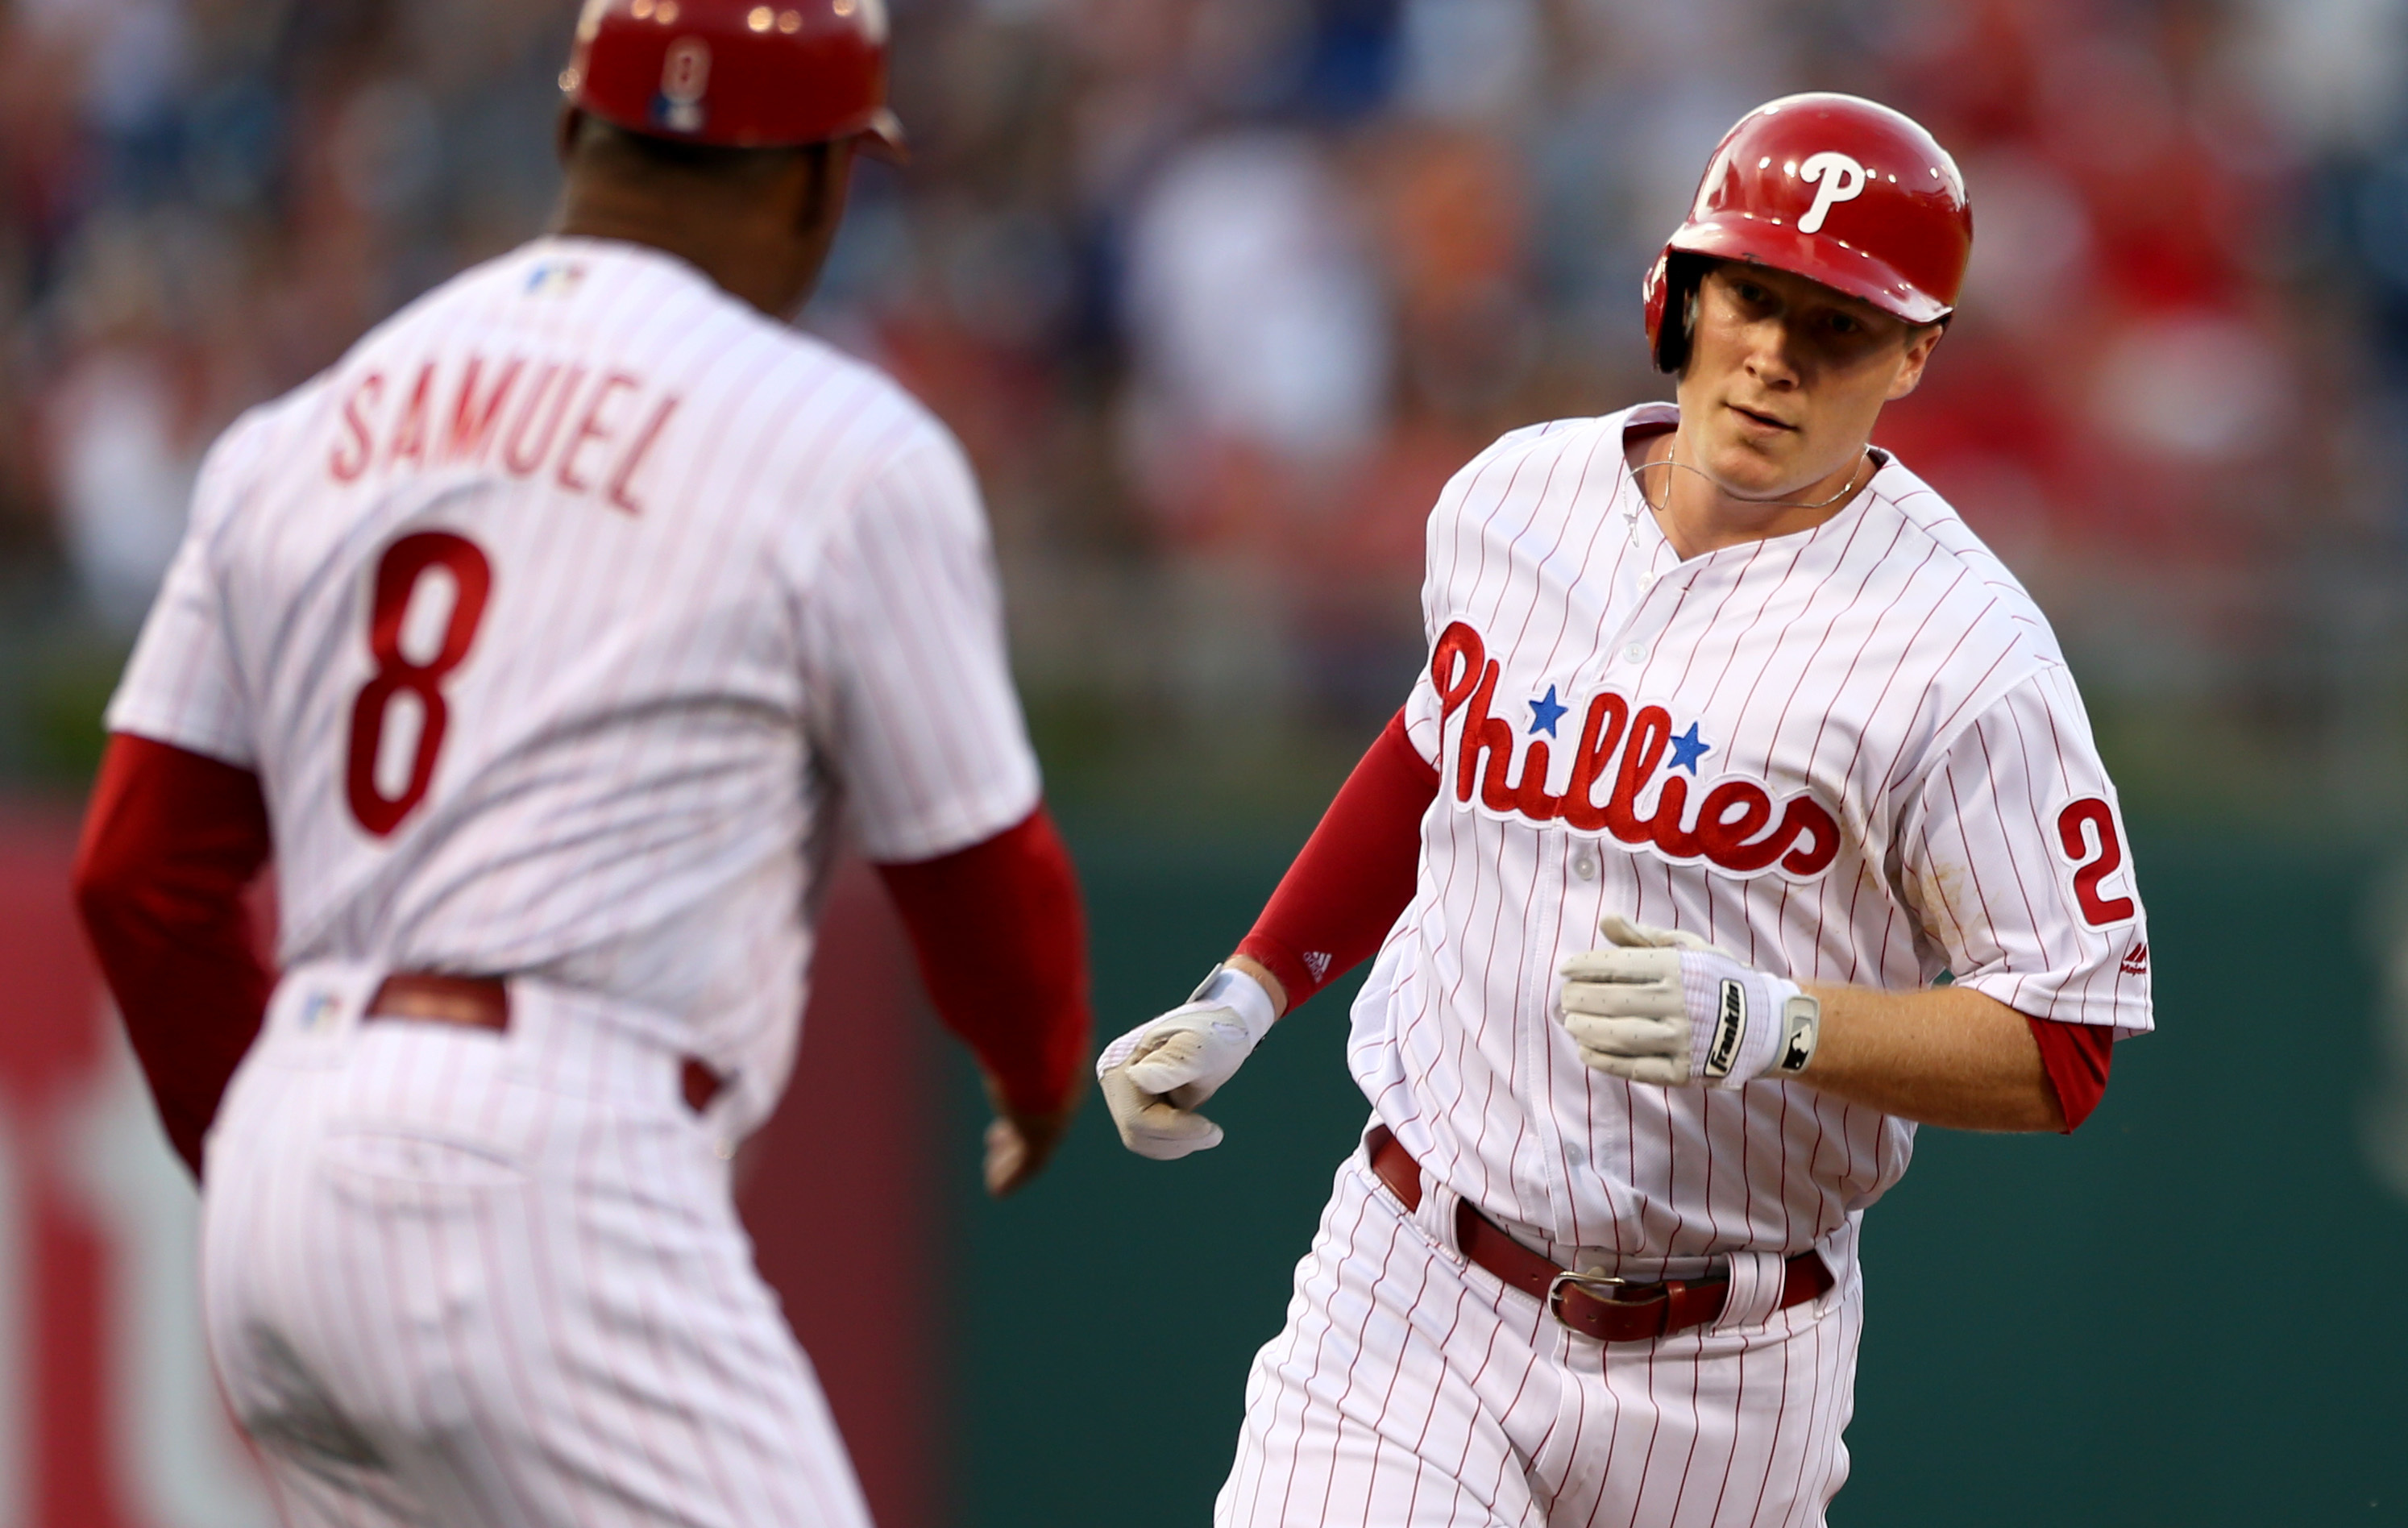 Philadelphia Phillies' Cody Asche is congratulated by third base coach Juan Samuel (8) after hitting a home run off Atlanta Braves starting pitcher Mike Foltynewicz during the fourth inning of a baseball game, Tuesday, July 5, 2016, in Philadelphia. (AP P